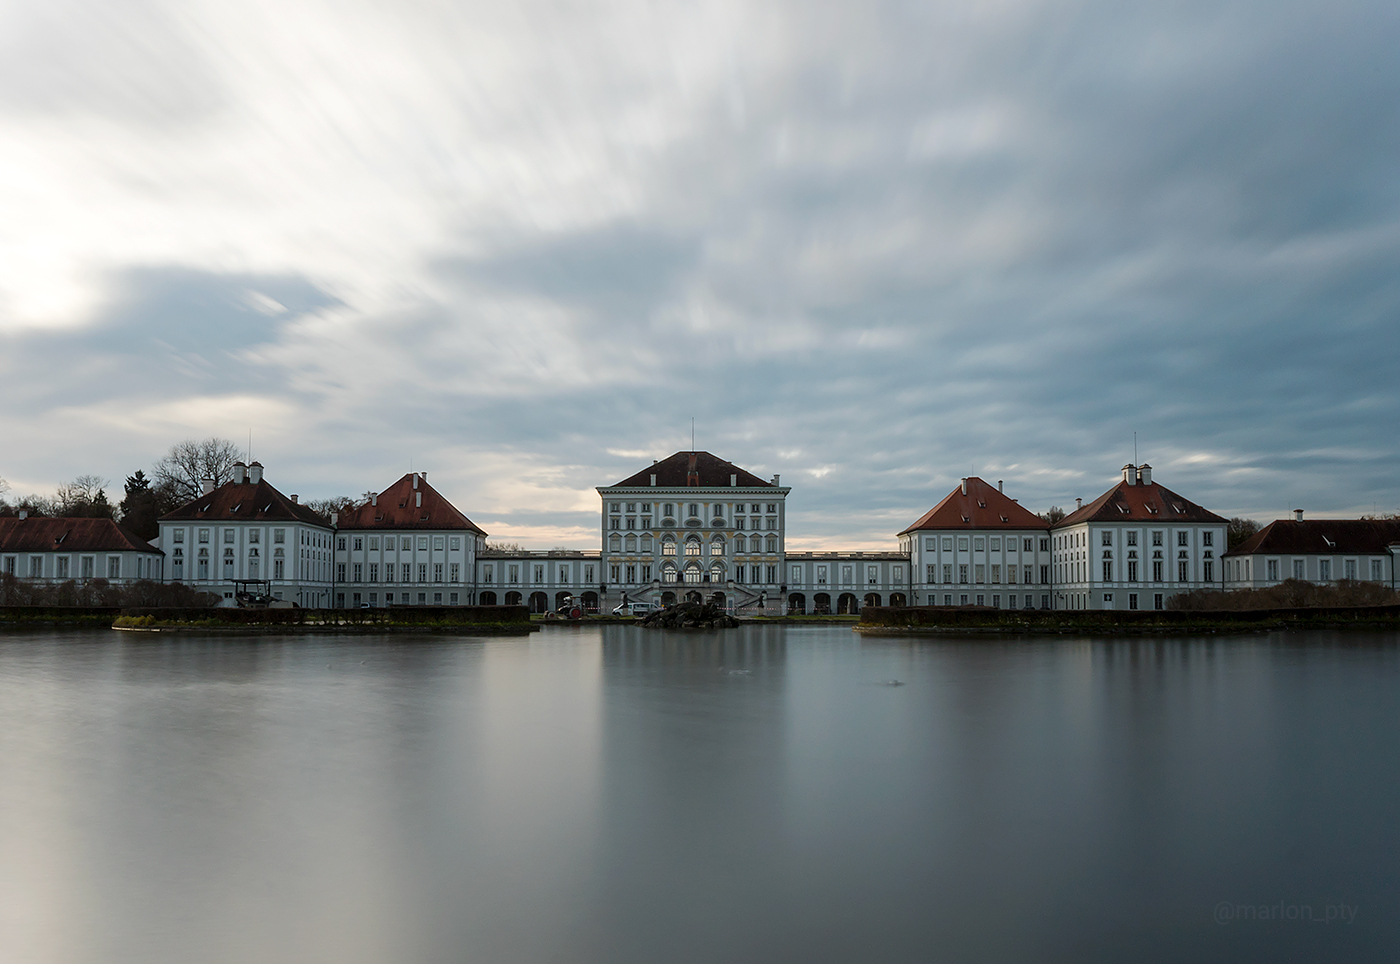 The Nymphenburg Palace in Munich, Germany. Photo: Marlon I. Torres